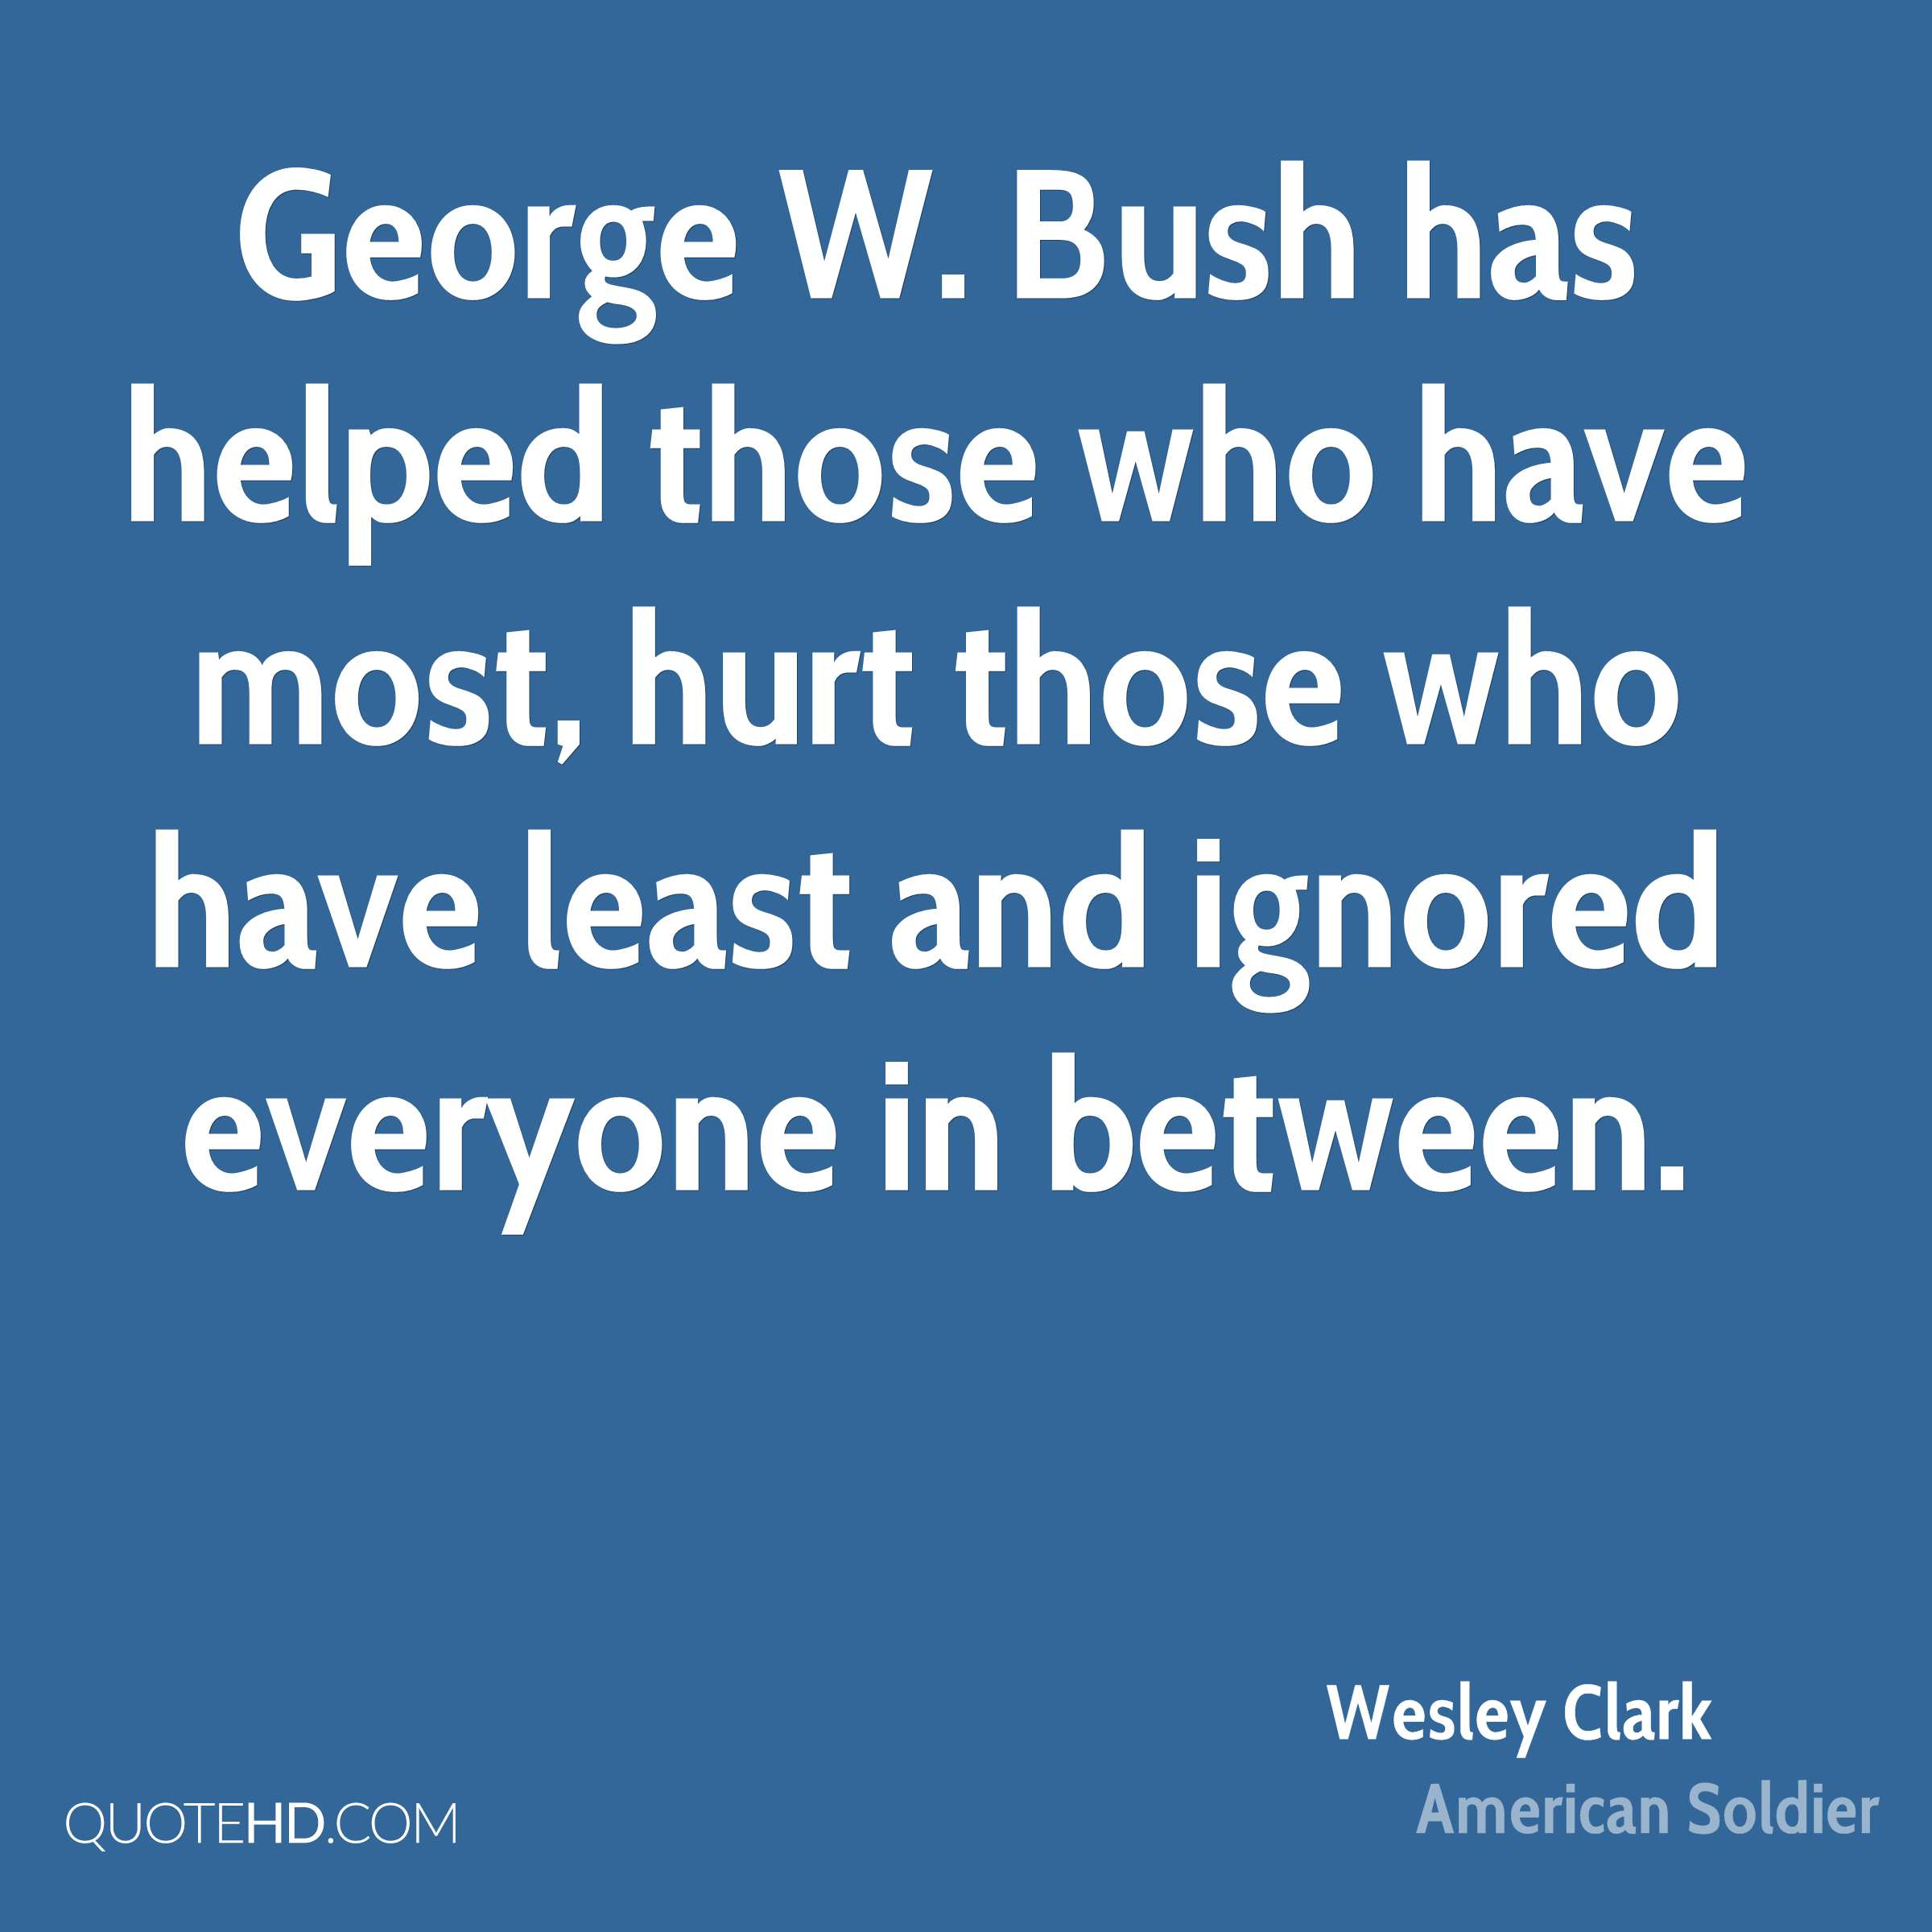 George W. Bush has helped those who have most, hurt those who have least and ignored everyone in between.